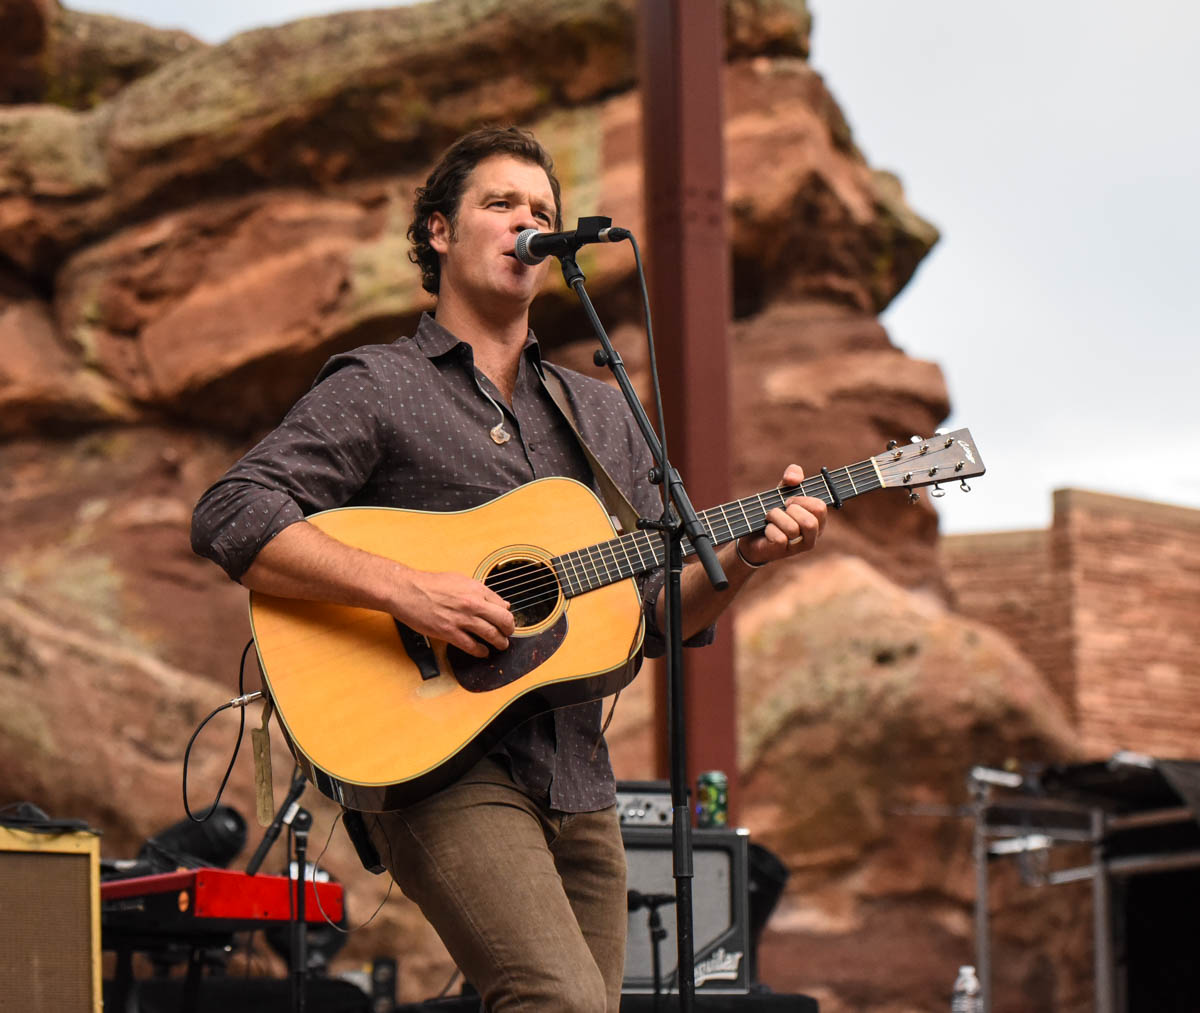 Woody Platt of Steep Canyon Rangers | Red Rocks Amphitheatre | Morrison, CO. | 09/05/2019 | Photos: ©Pix Meyers 2019